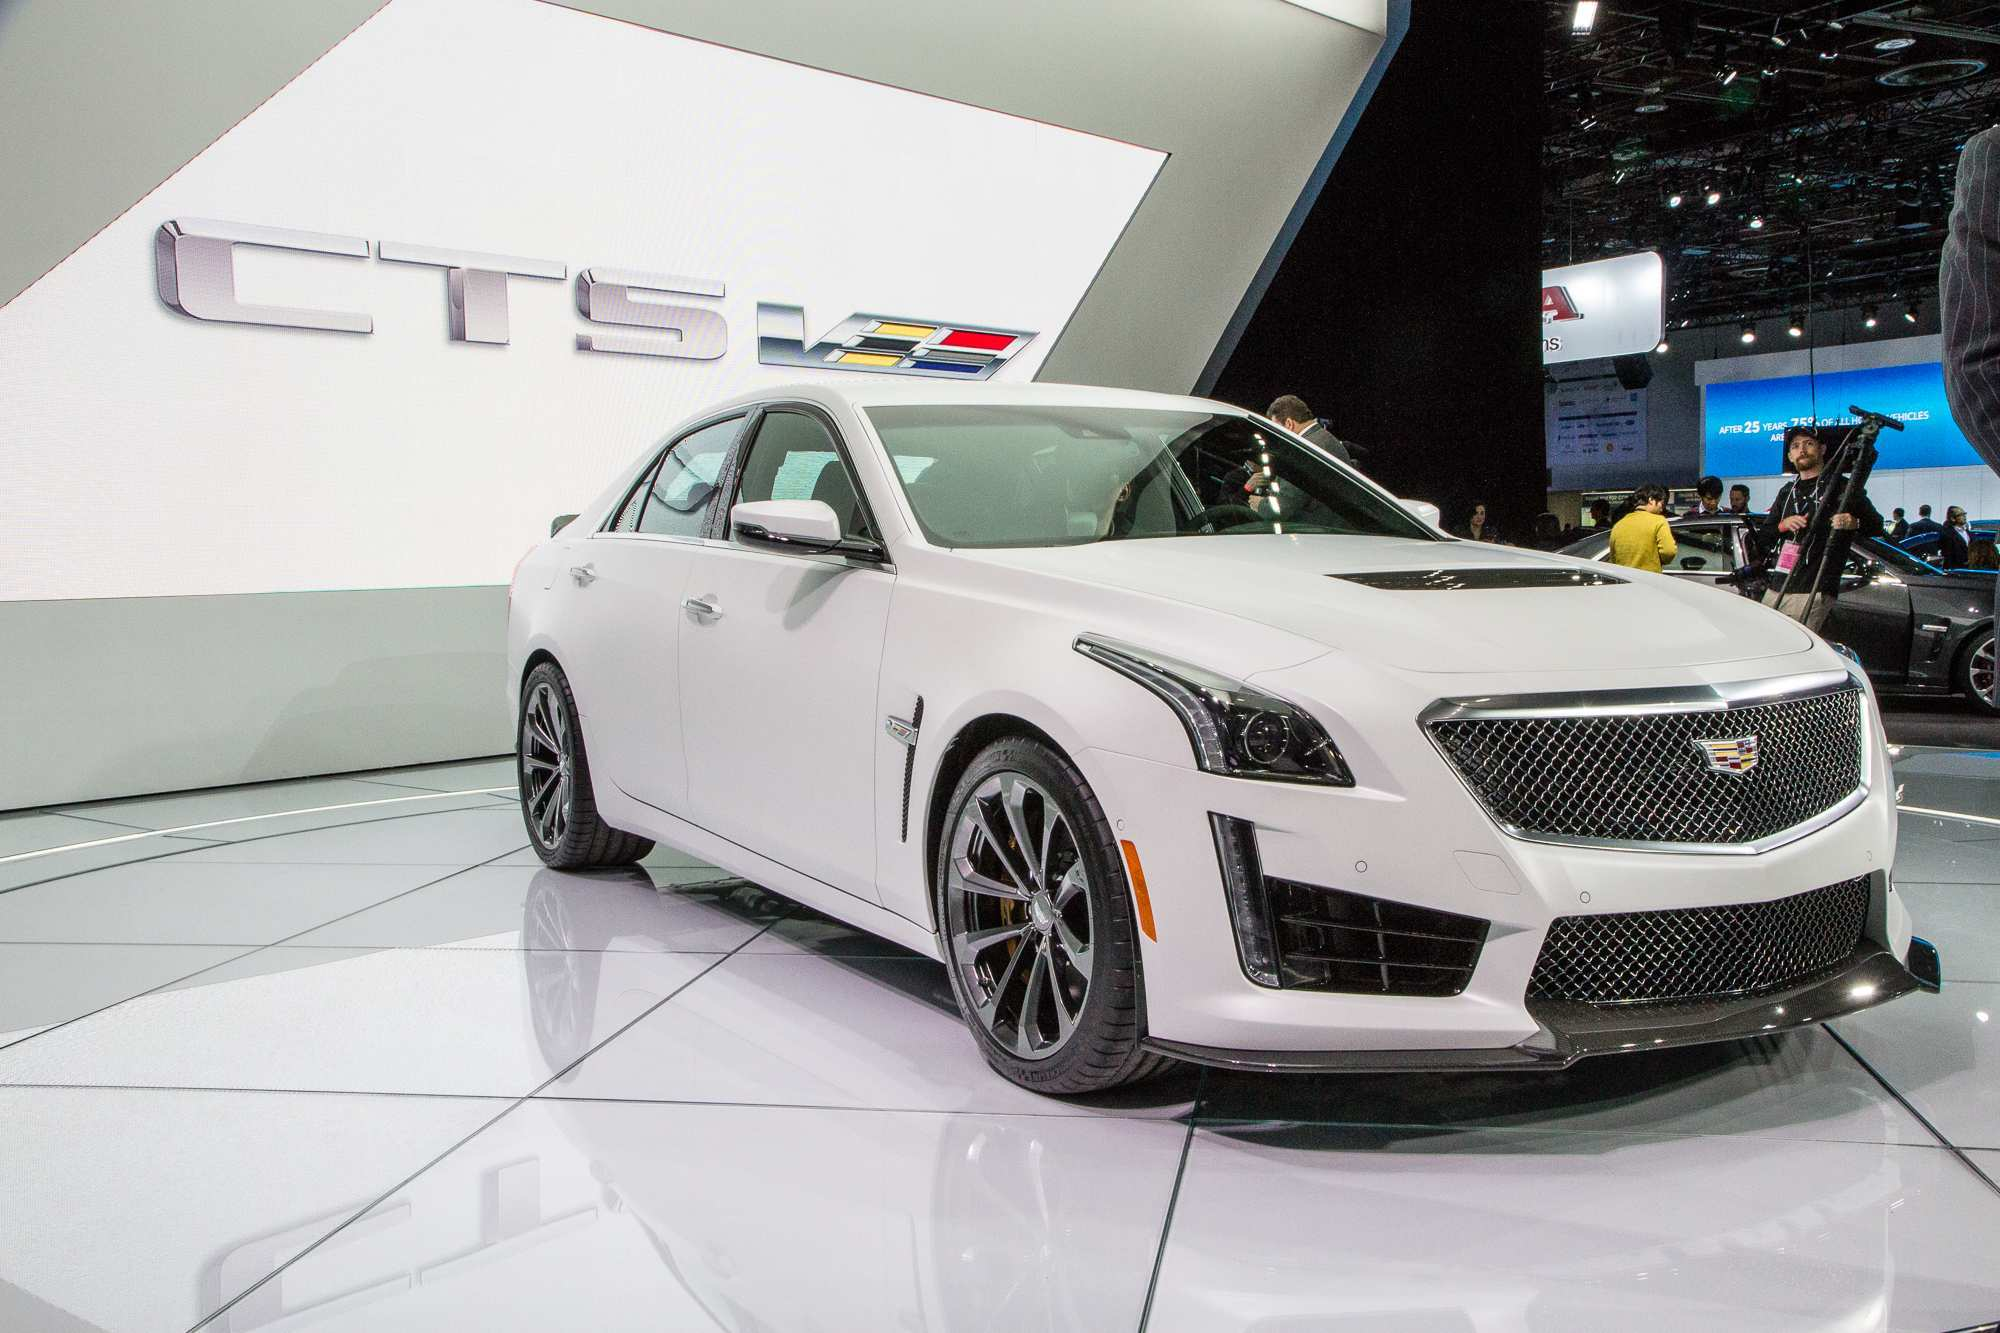 99 Concept of 2020 Cadillac Ats Pricing for 2020 Cadillac Ats